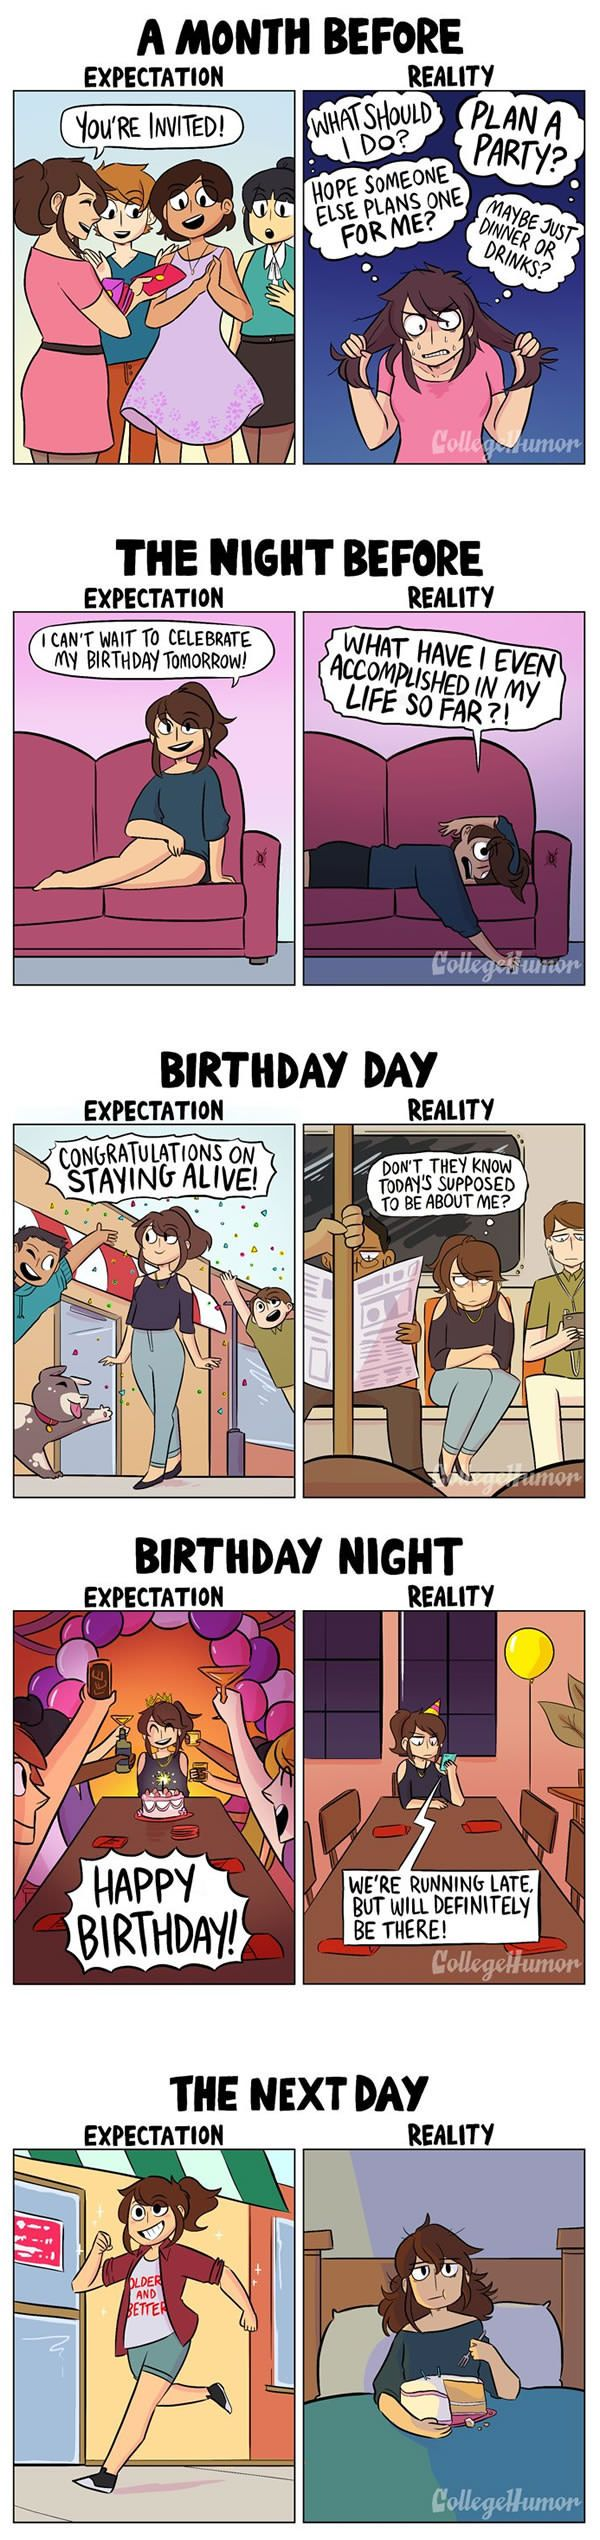 Your Birthday: Expectation vs. Reality (Karina Farek)